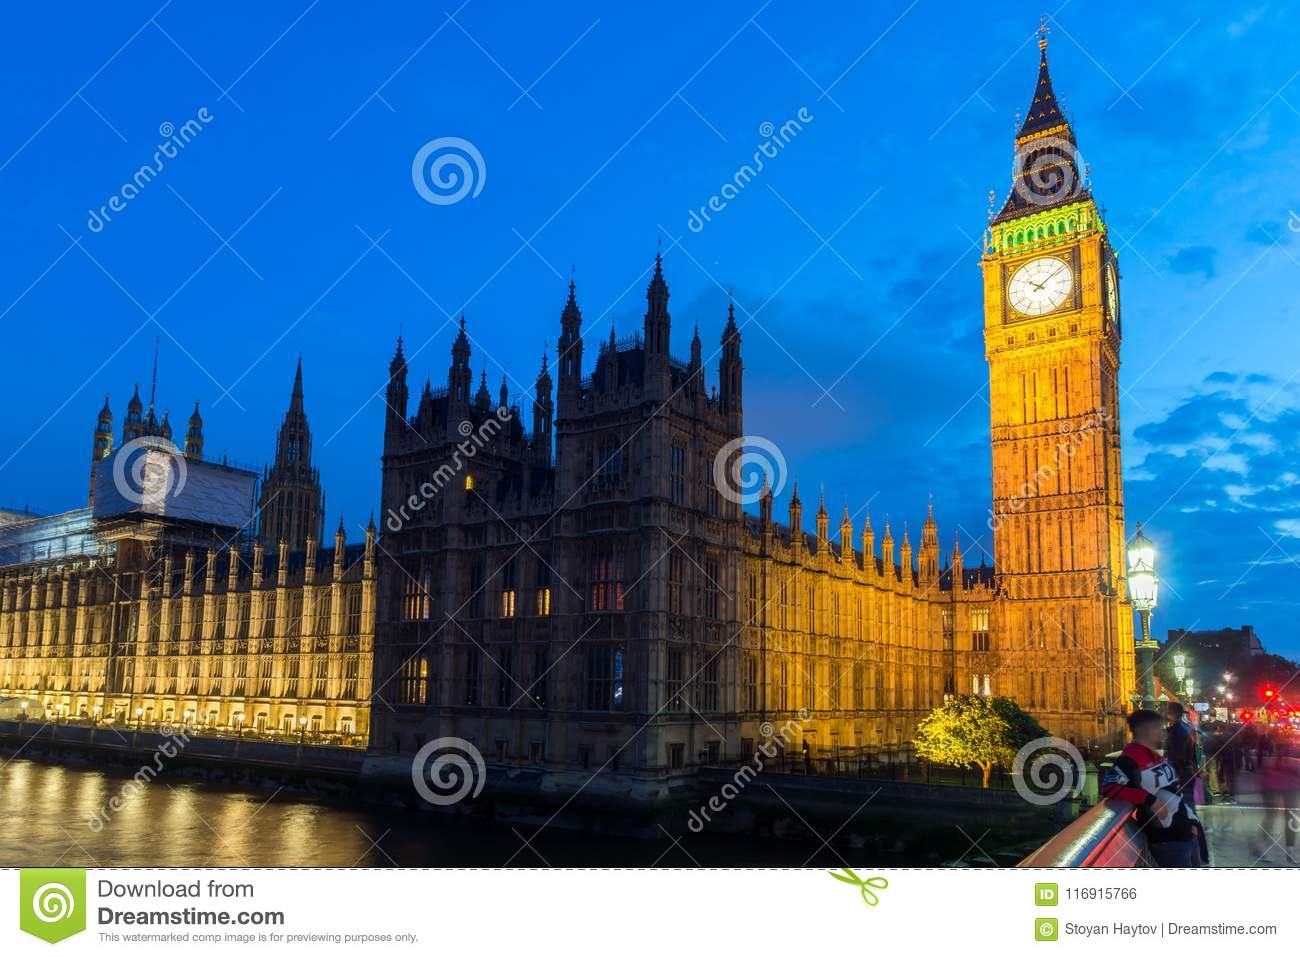 London England June 16 2016 Night Photo Of Houses Of Parliament With Big Ben From Westminster Bridge London England Great Britain